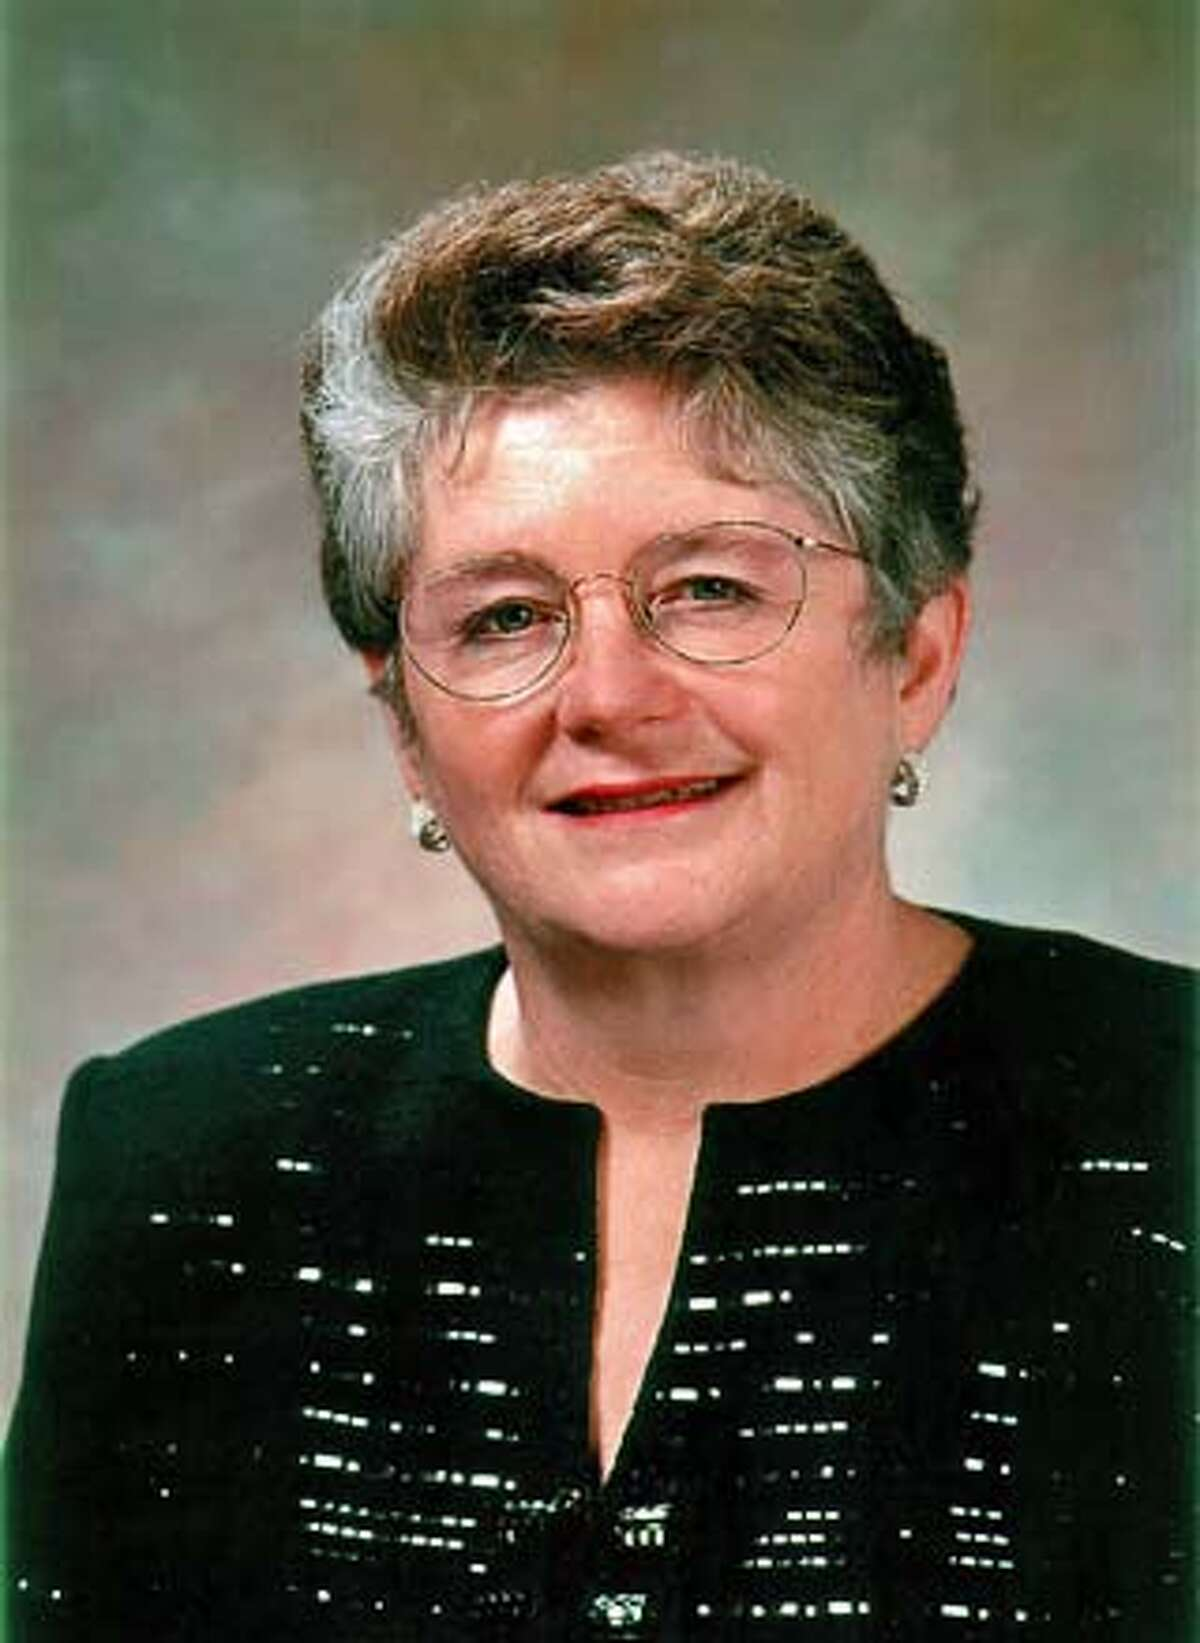 M.R.C. Greenwood is provost and senior vice president for academic affairs for the 10-campus UC system. Ran on: 11-05-2005 M.R.C. Greenwood, UC provost, is being investigated for promoting her friend, Lynda Goff.